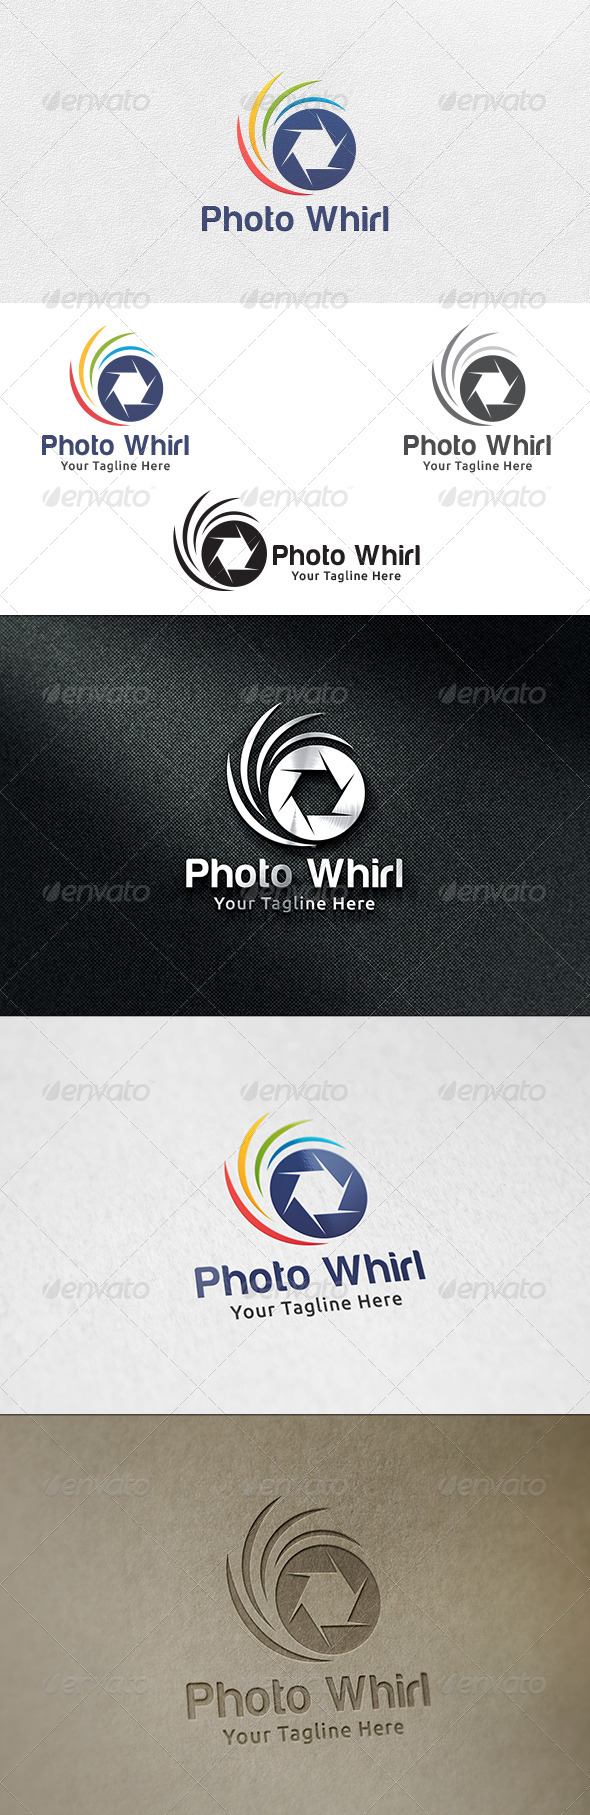 GraphicRiver Photo Whirl Logo Template 6485957